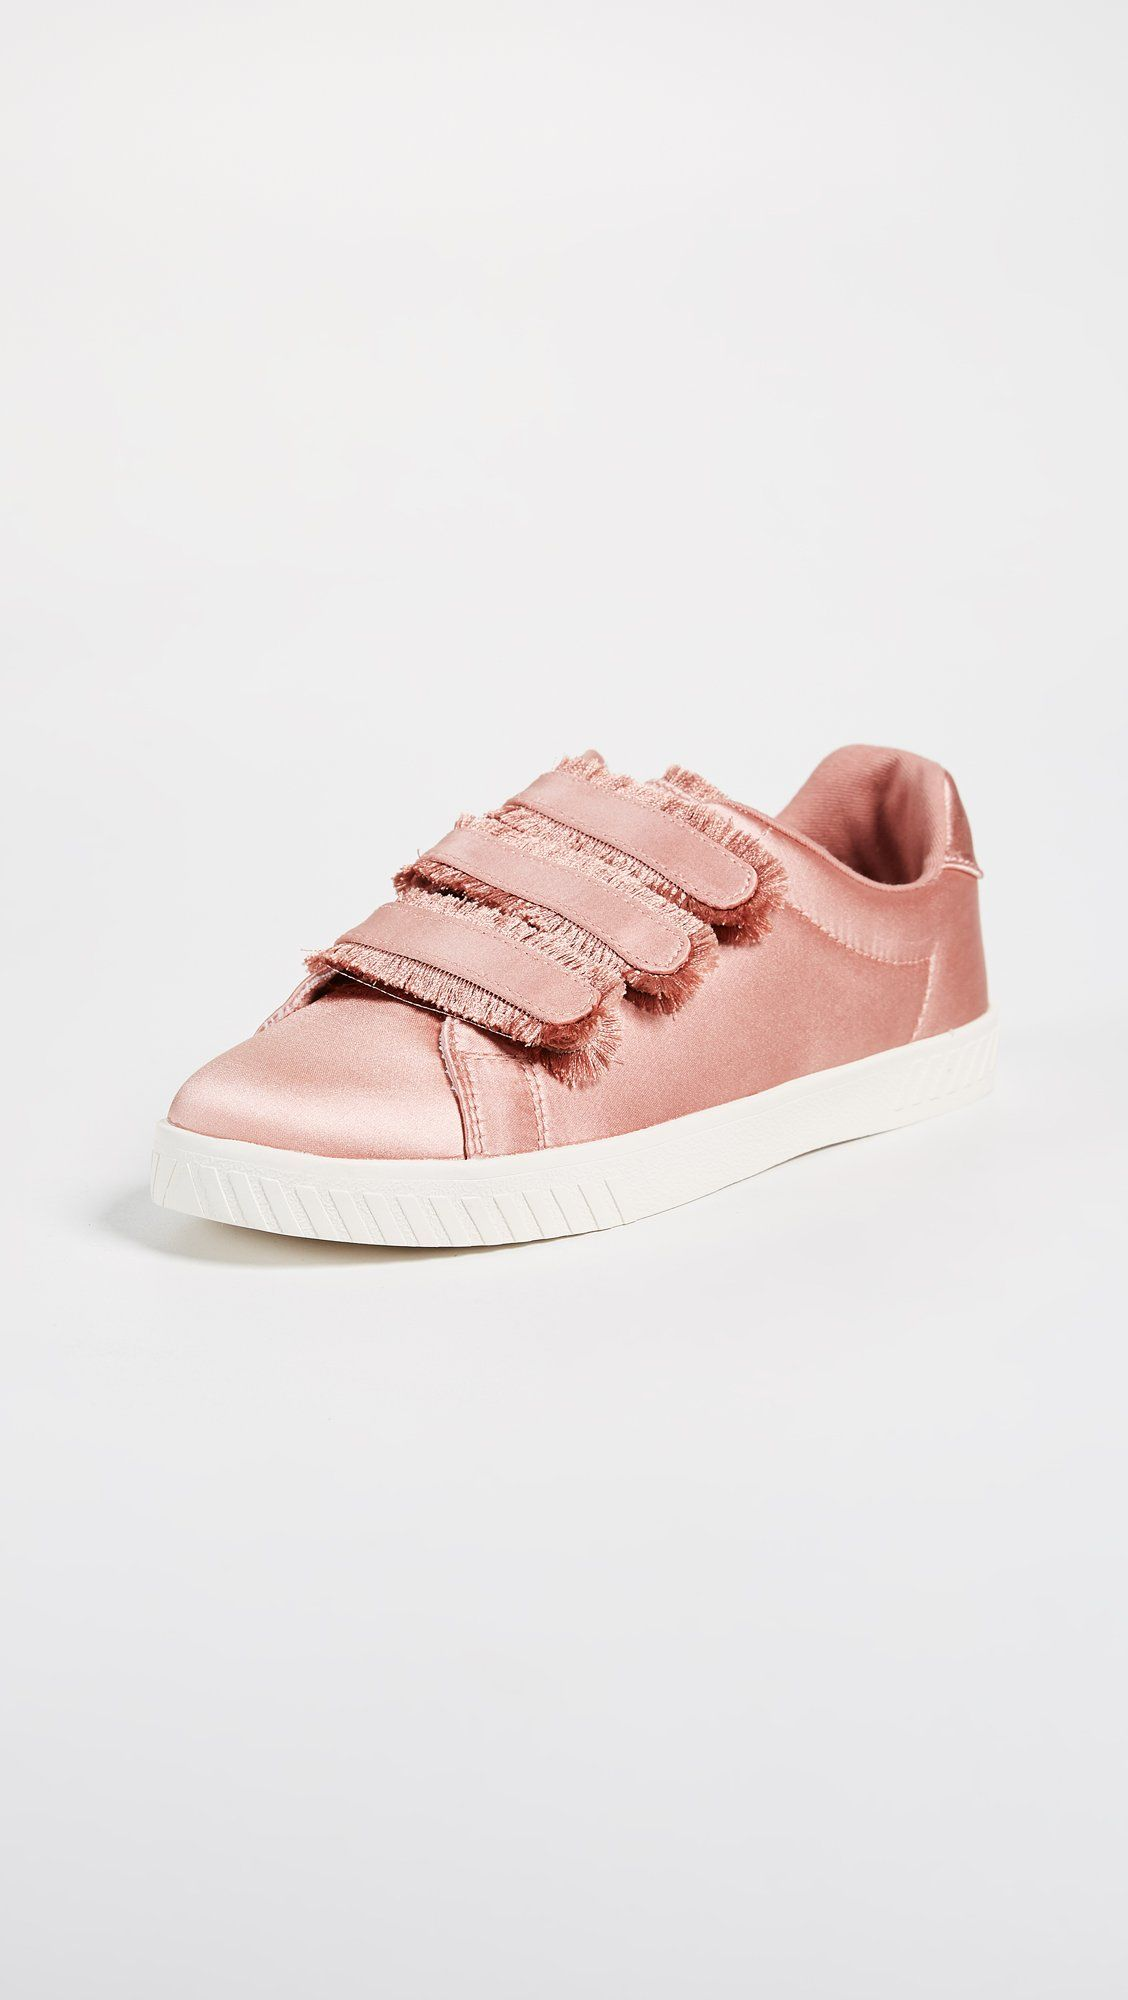 Tretorn Carry Fringe Velcro Sneakers Zapatillas